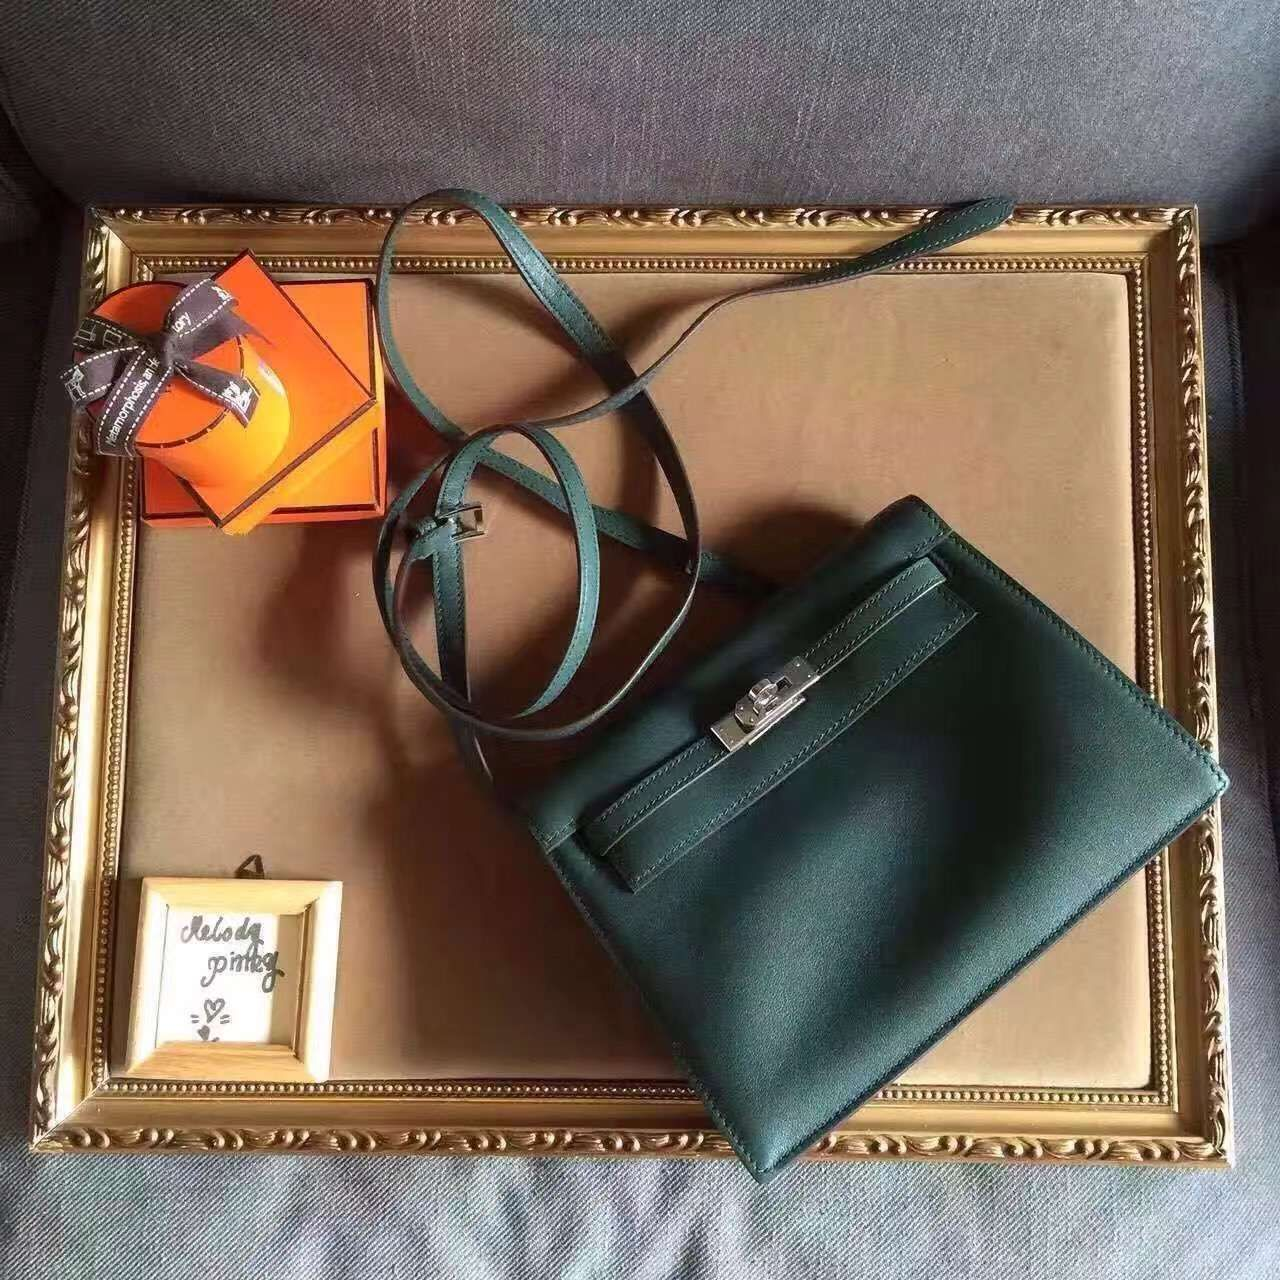 1a7680a31e39 Limited edition! Hermes kelly danse bag army green